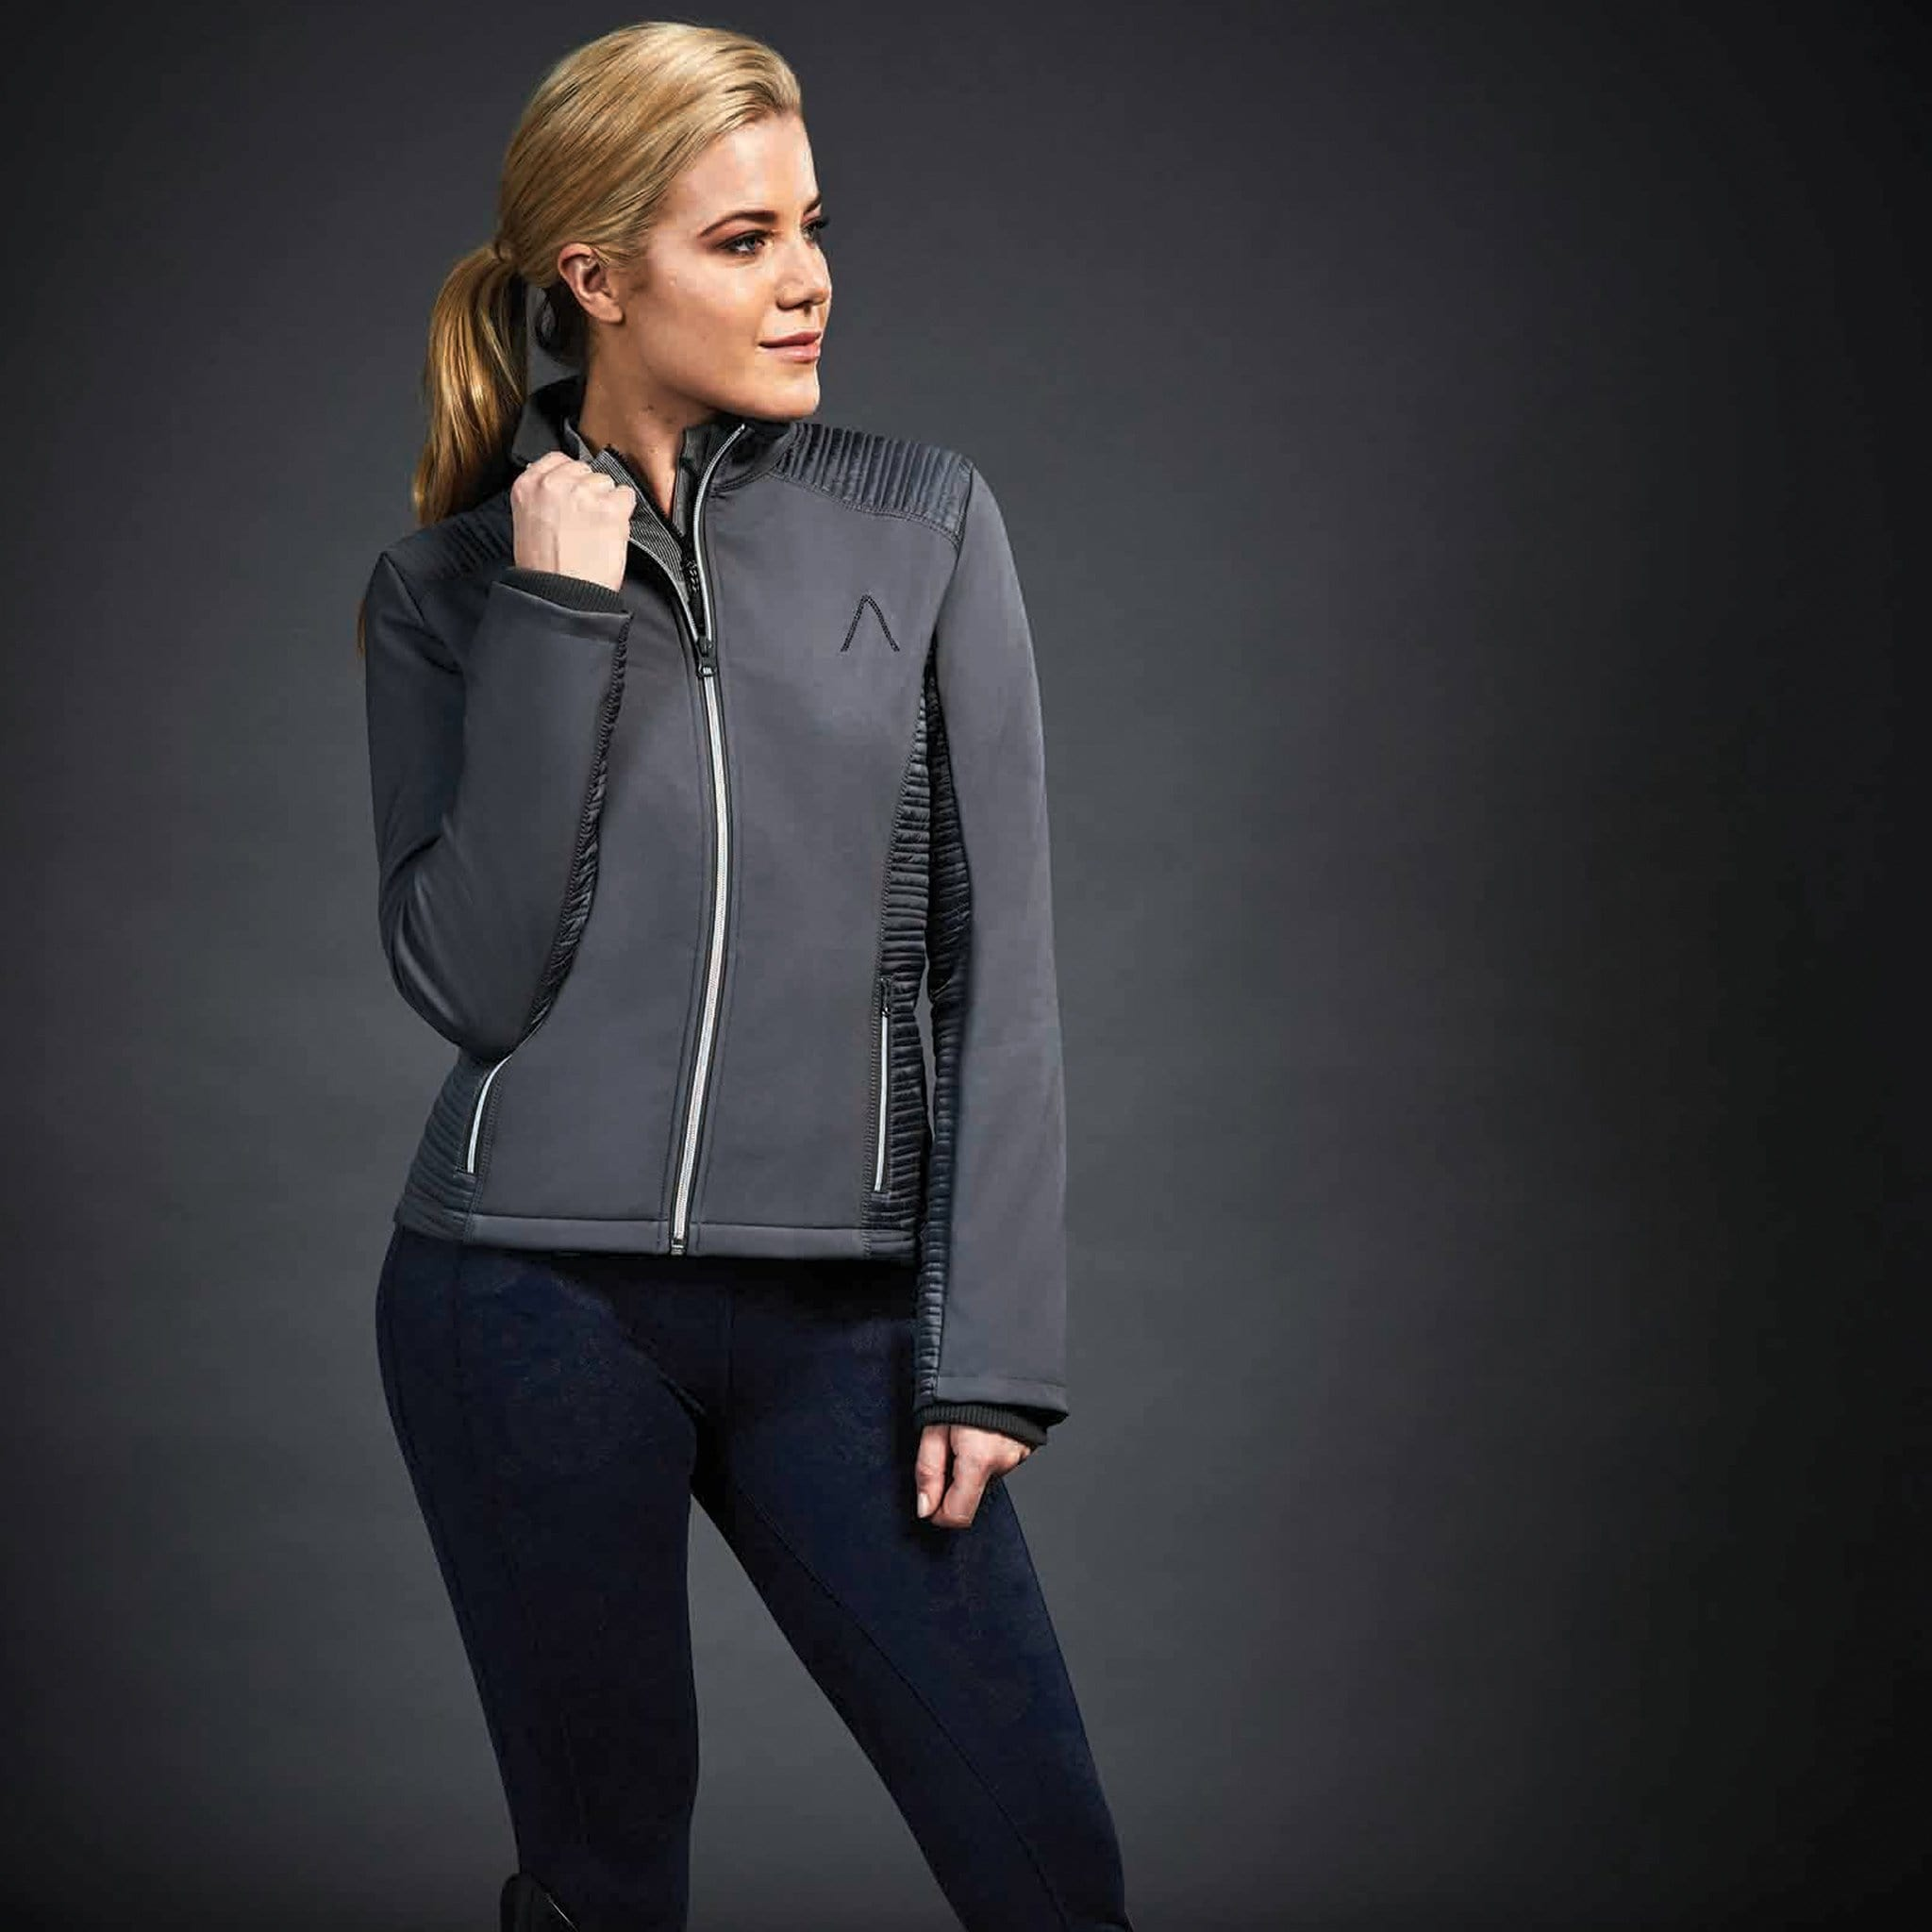 Dublin Black Jessica Softshell Jacket 1000568002 Charcoal On Model